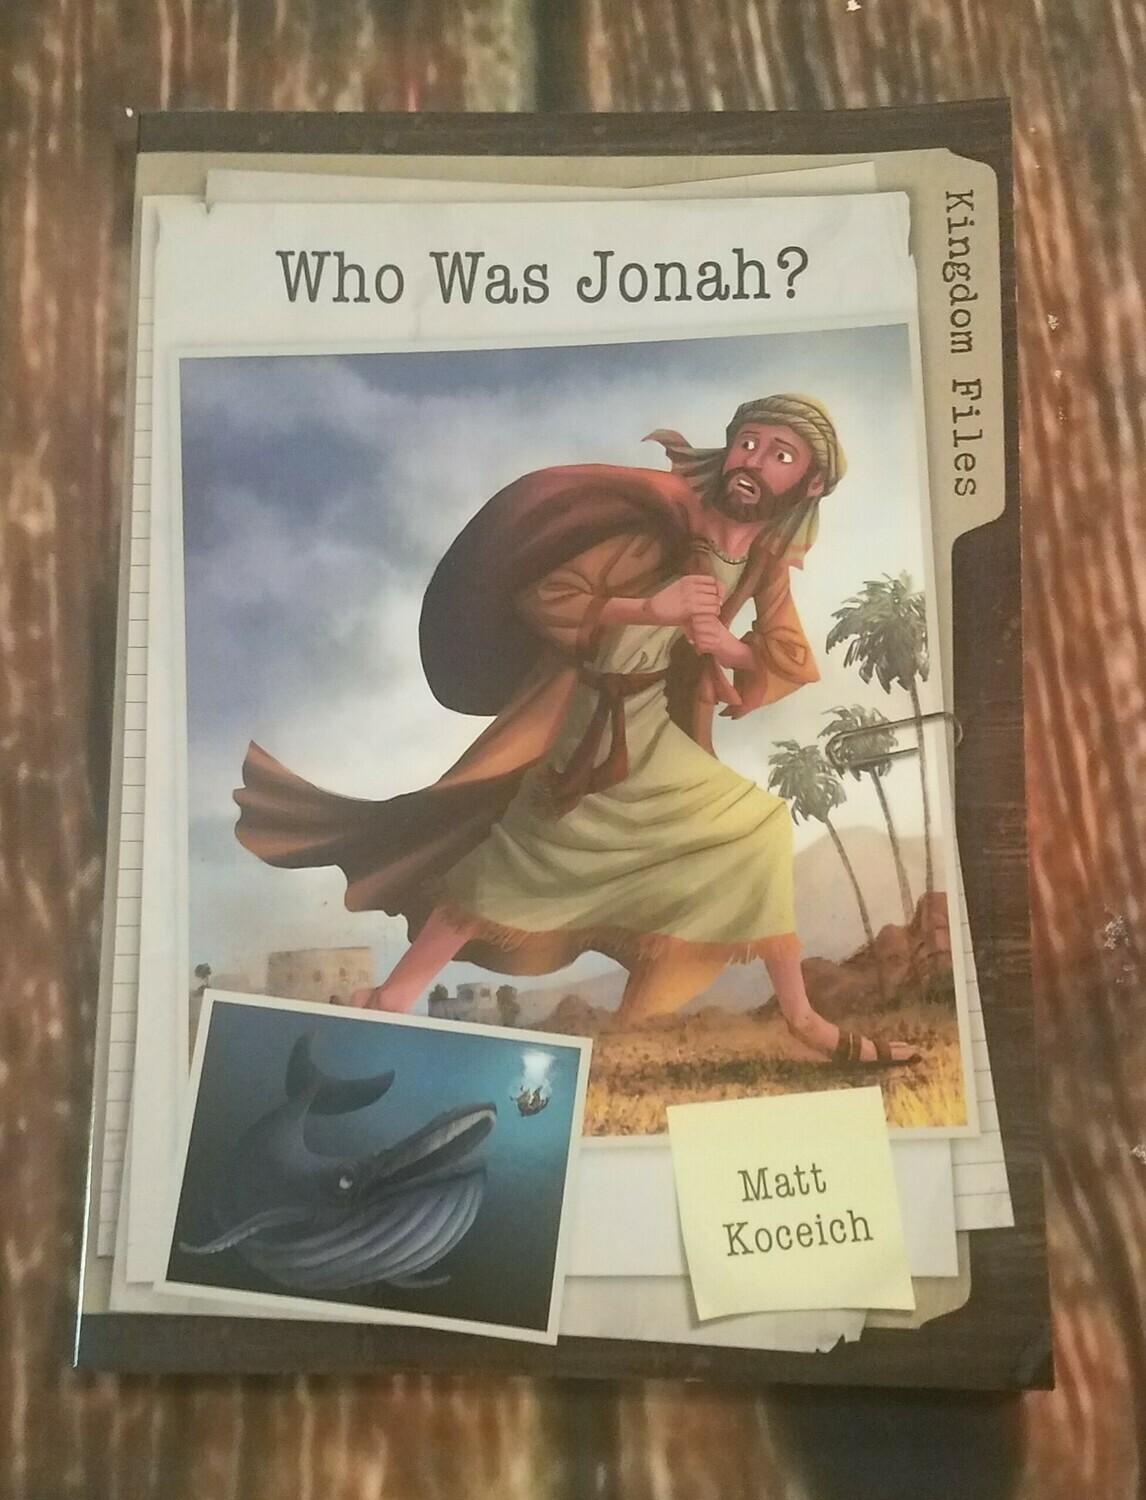 Kingdom Files: Who Was Jonah? by Matt Koceich